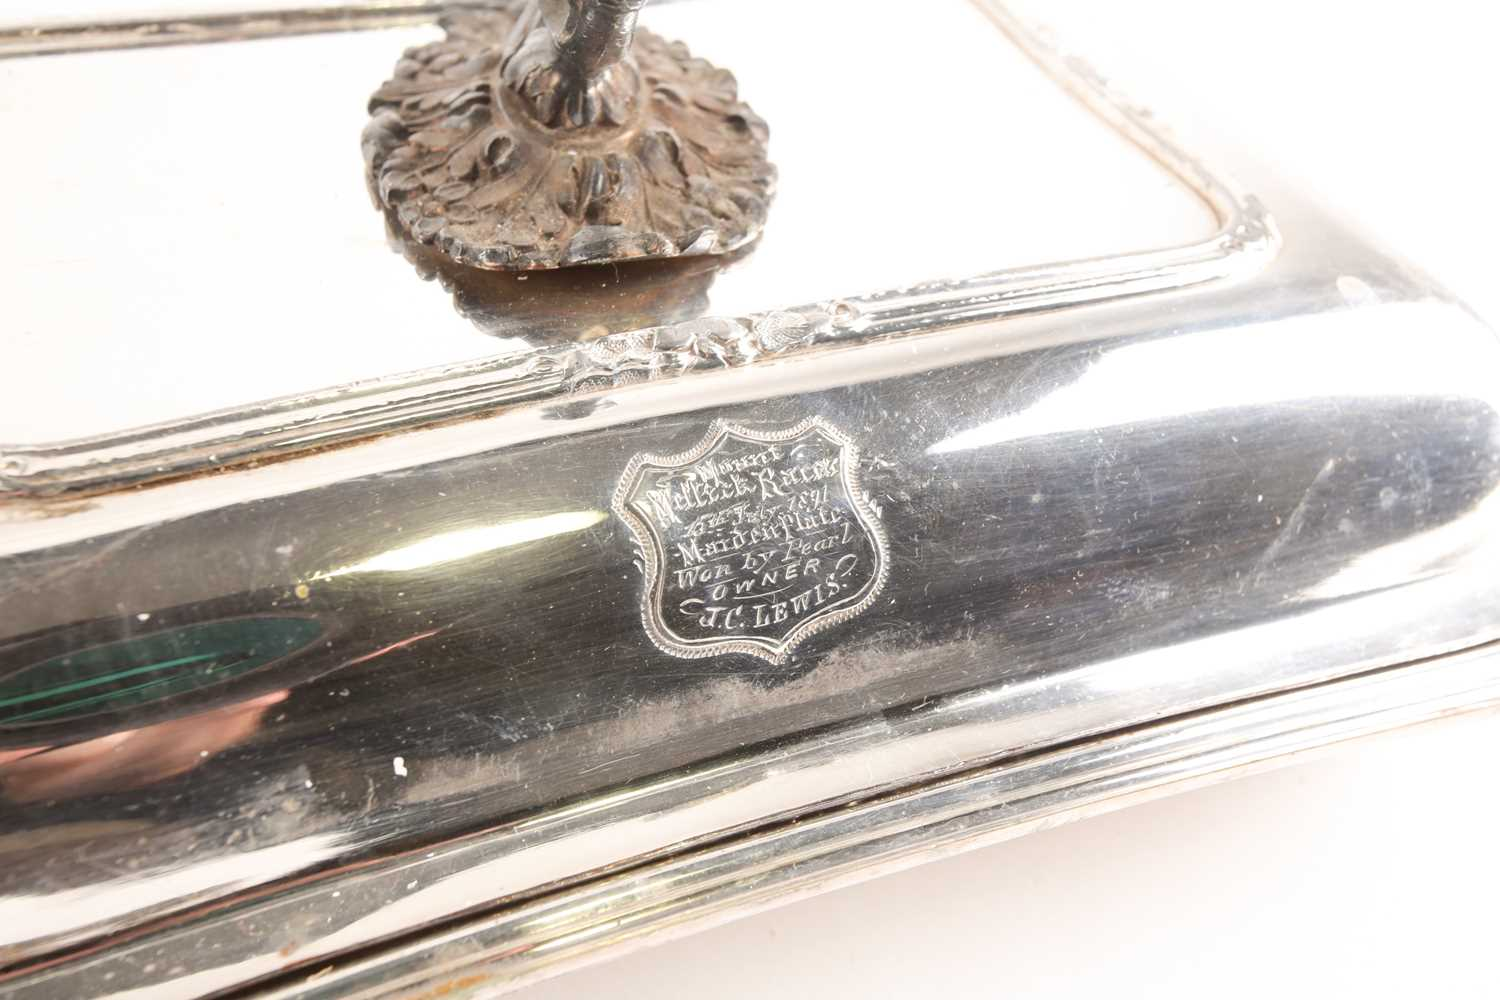 A pair of 19th century silver plated tureens and covers, the covers with shield shape cartouch - Image 5 of 5